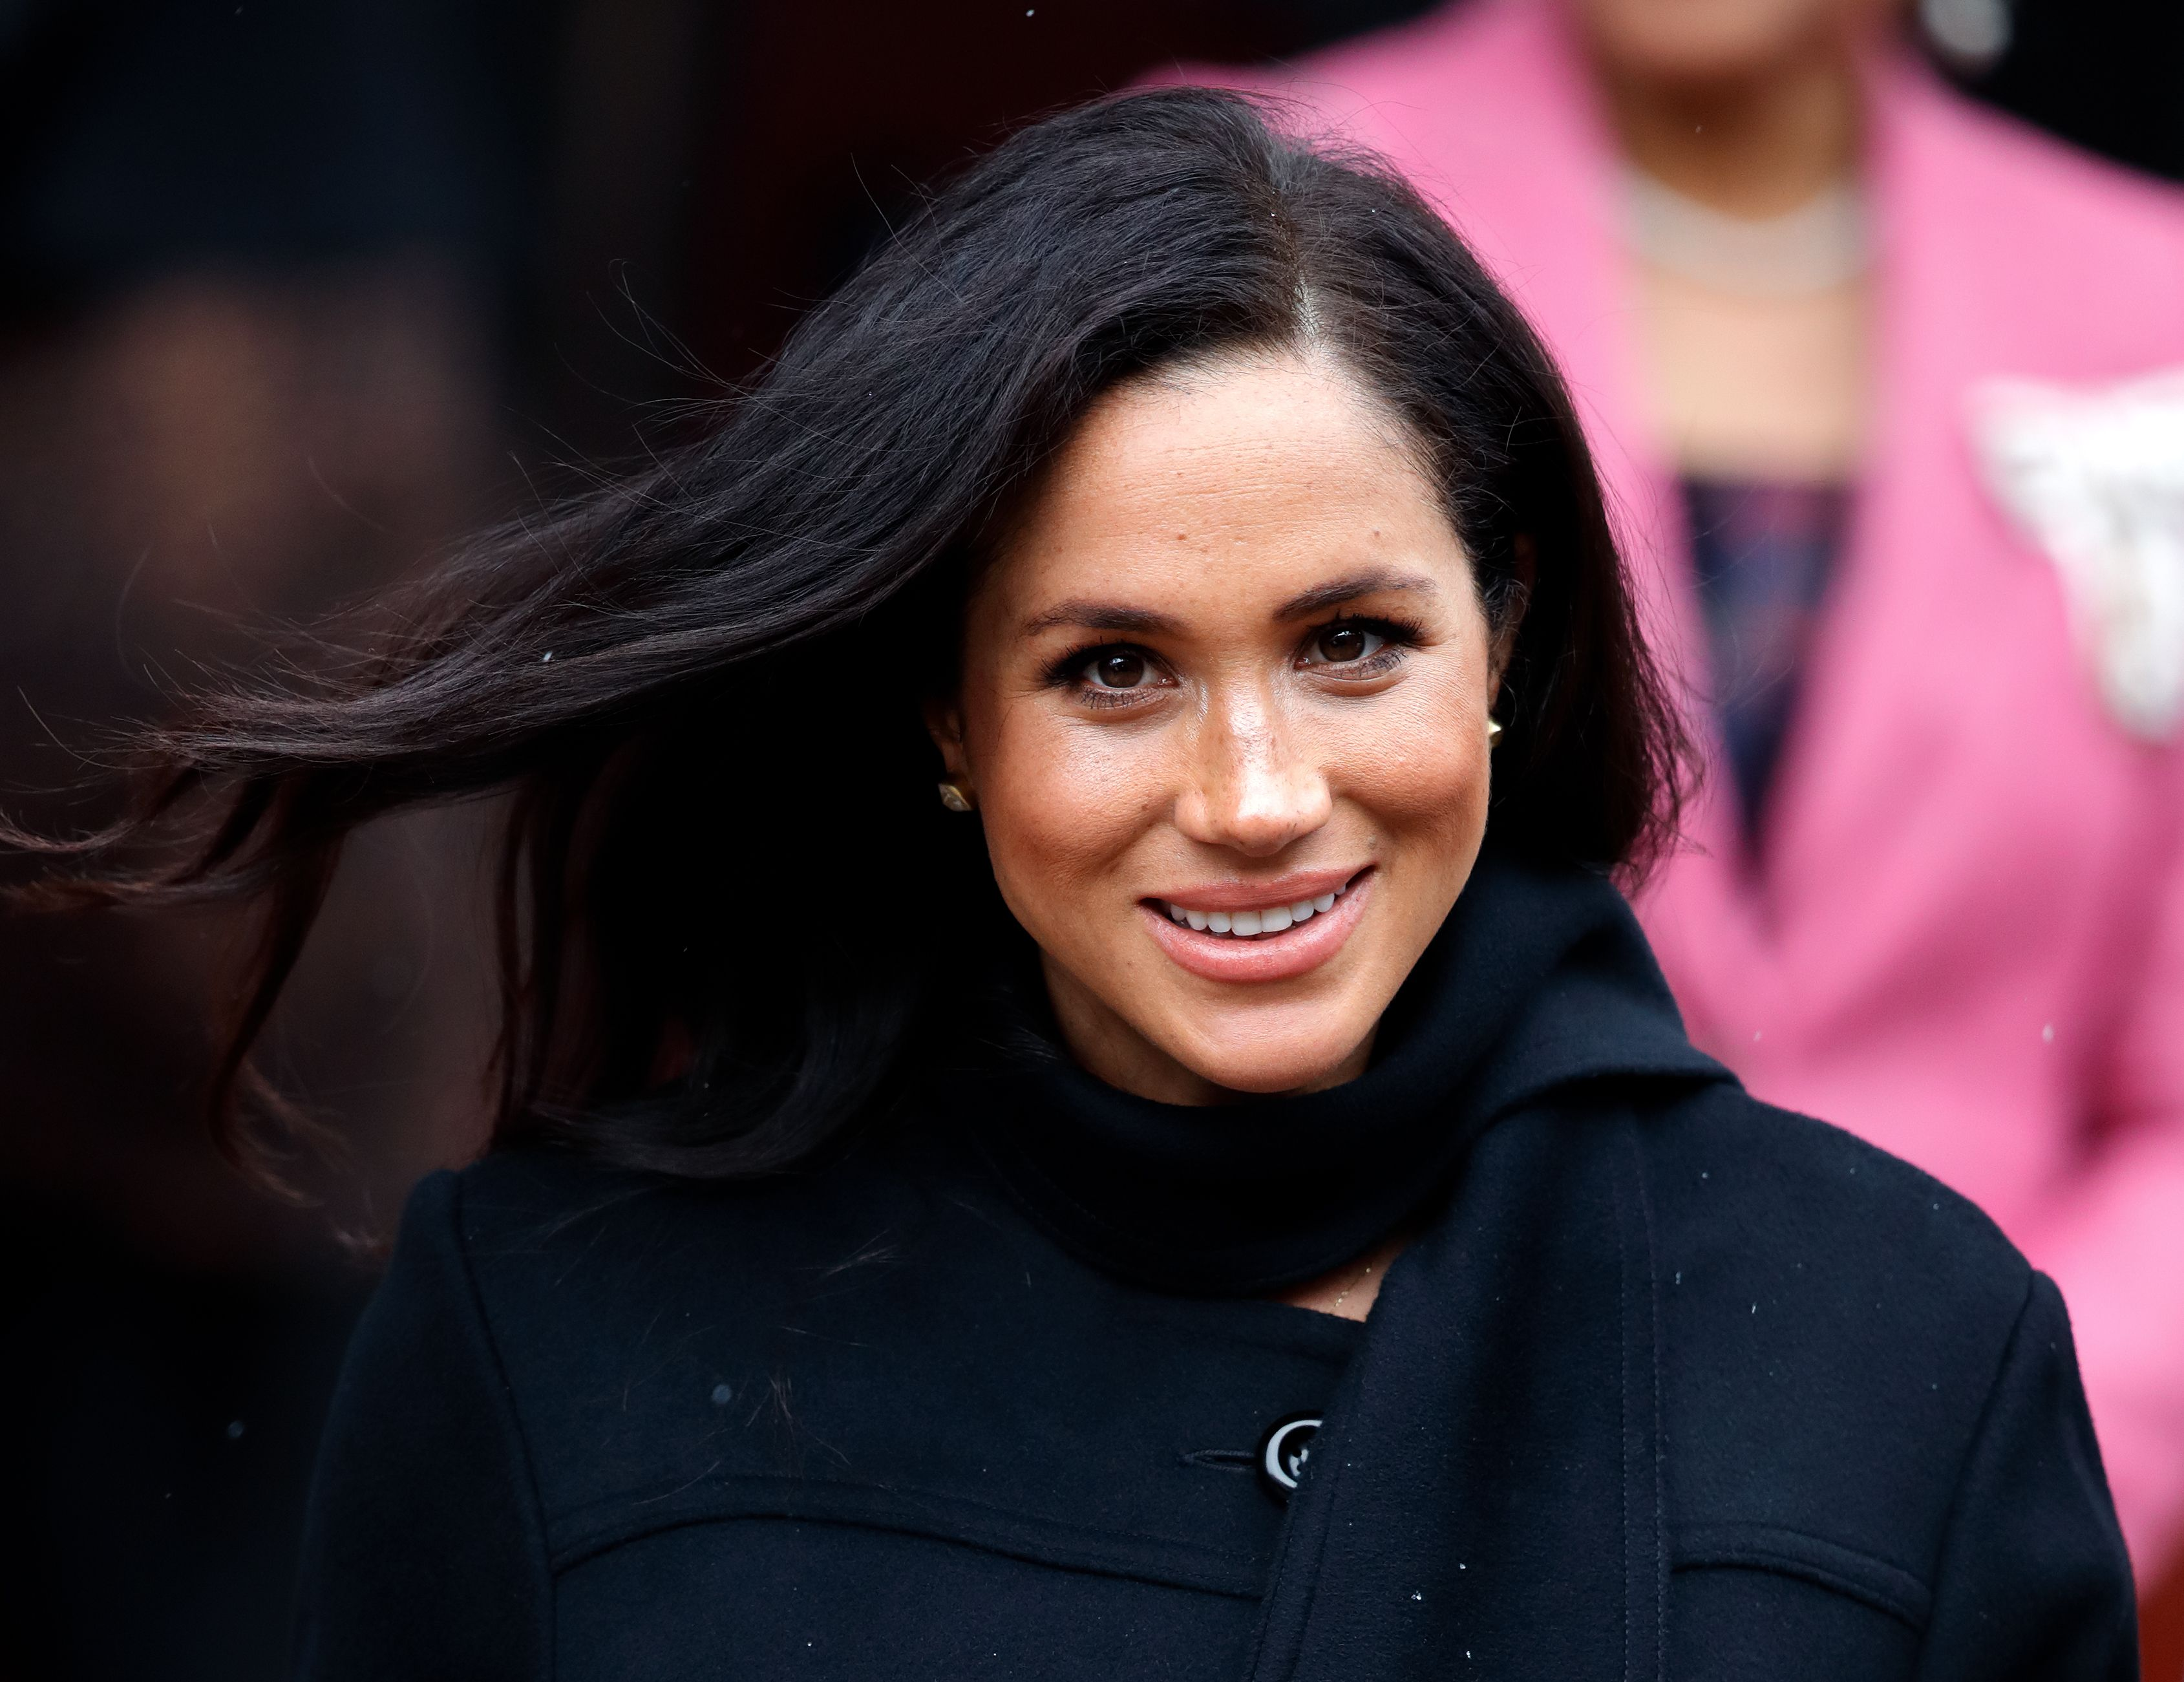 Meghan Markle clarifies how much her New York baby shower actually cost